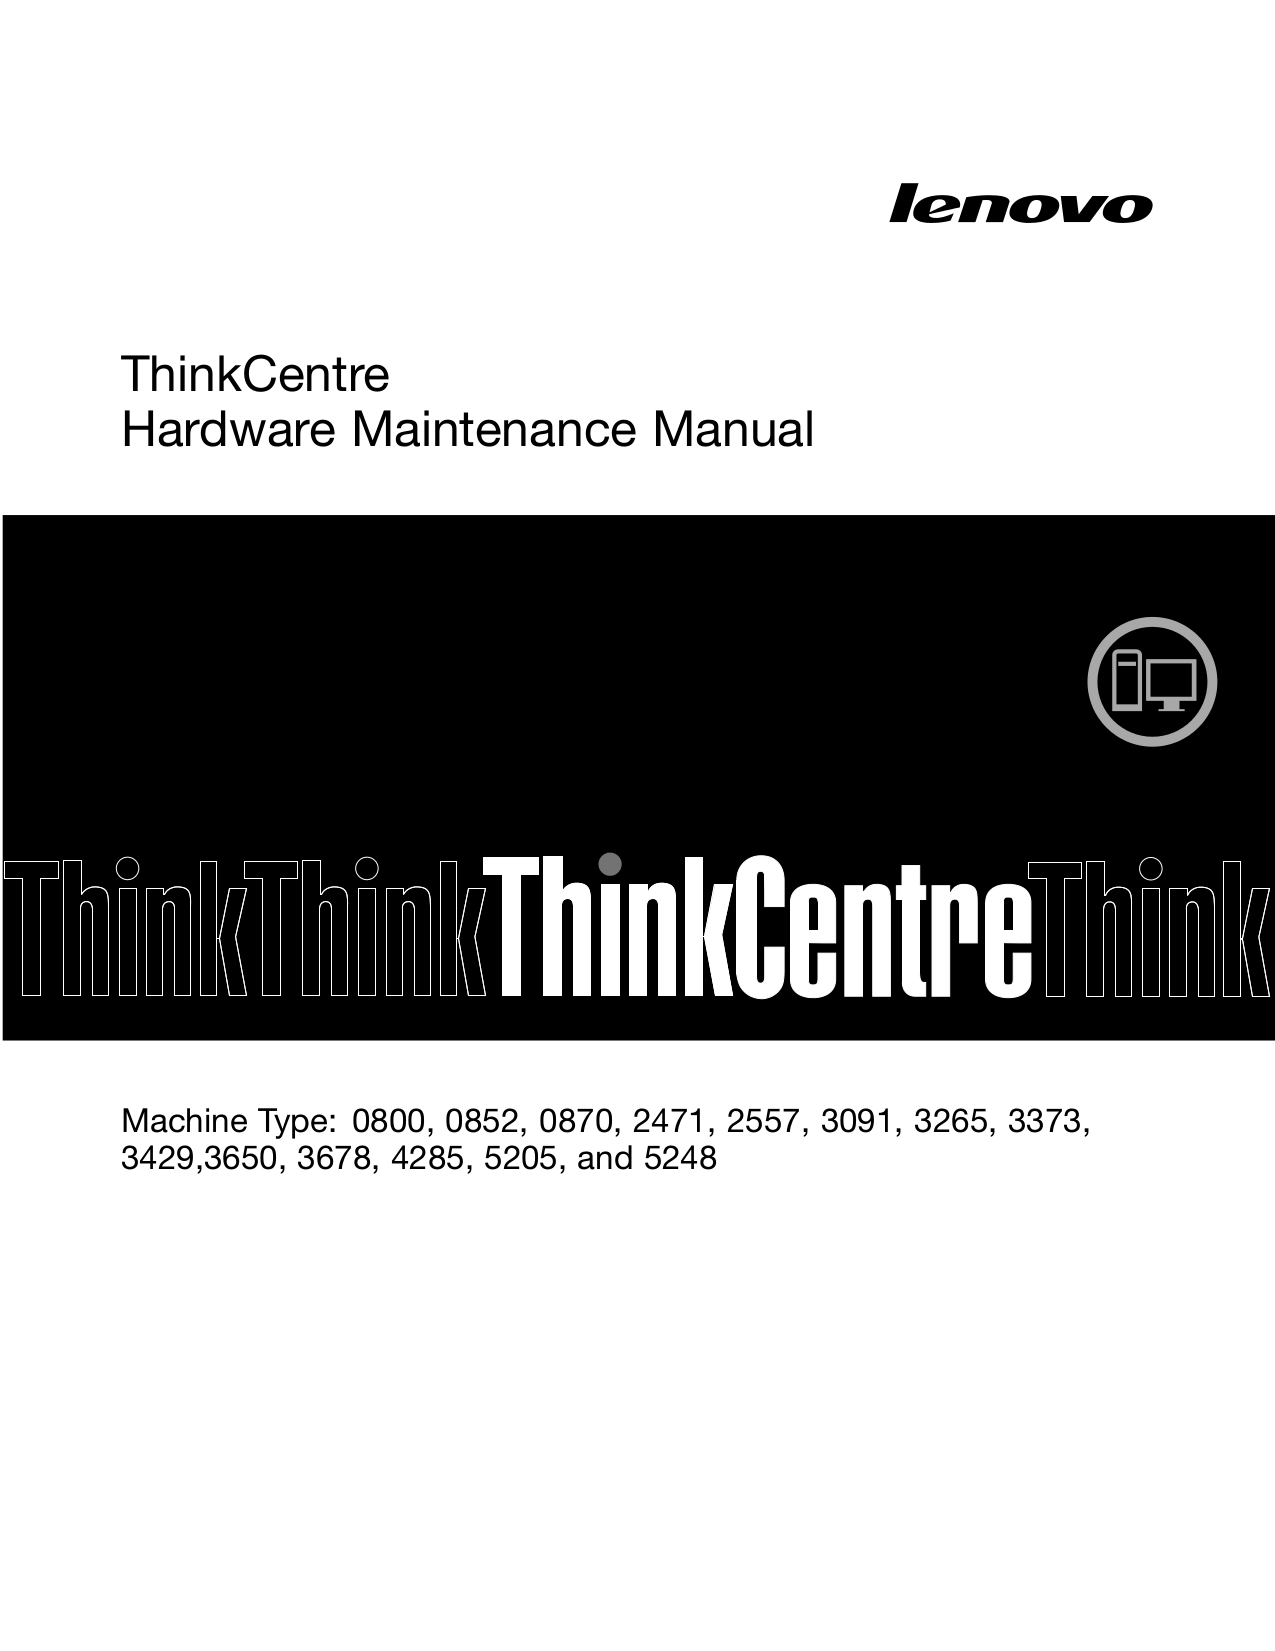 pdf for Lenovo Desktop ThinkCentre M90z 3265 manual